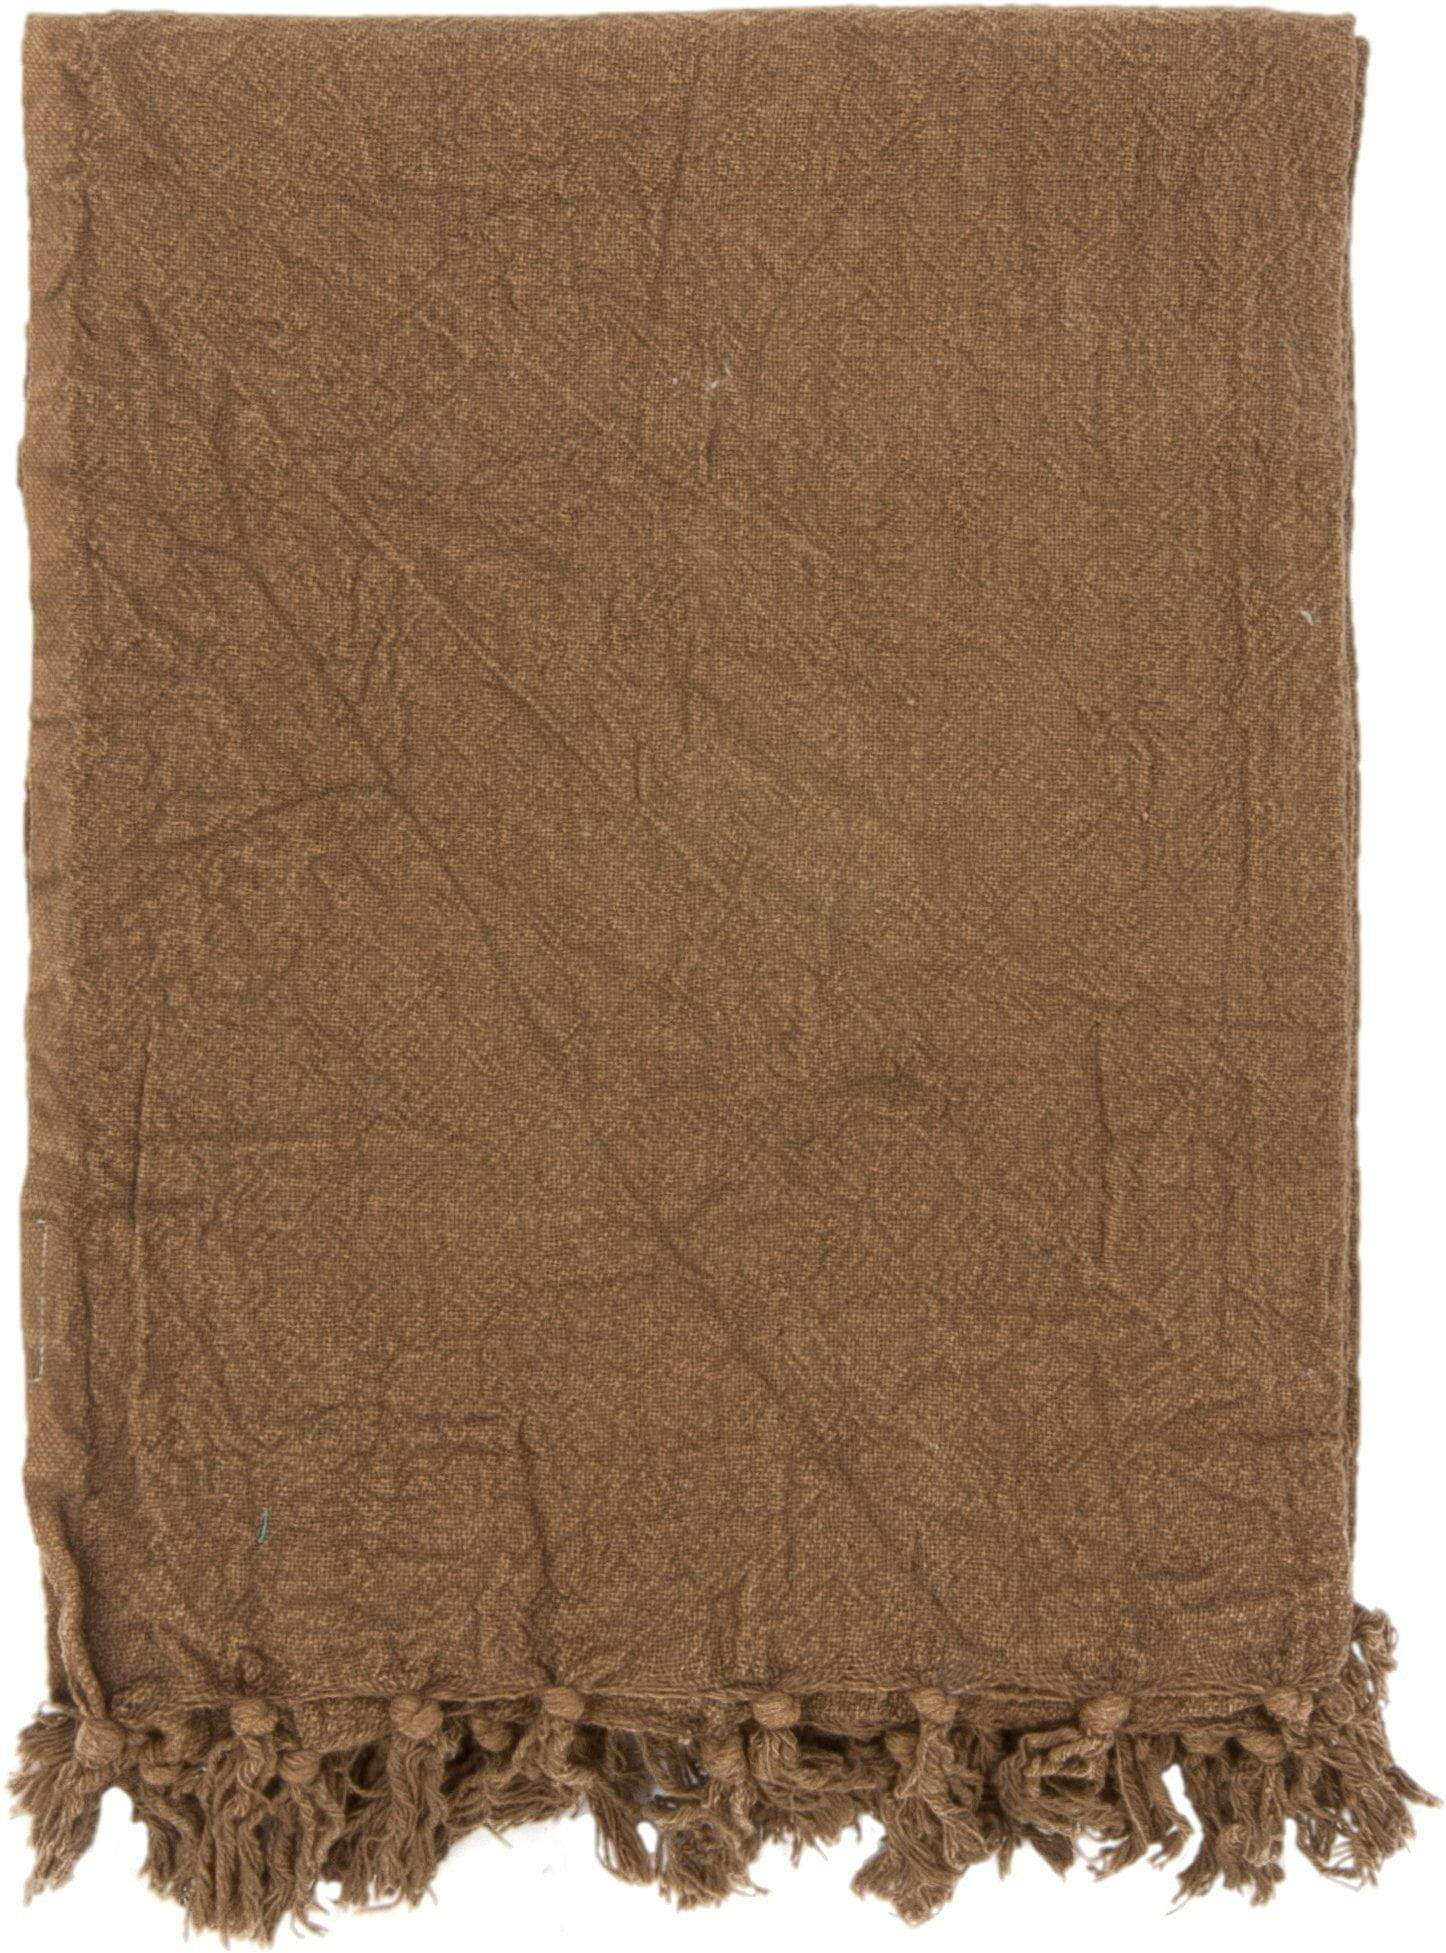 Ian Snow Ltd Olive Cotton Throw with Tassels